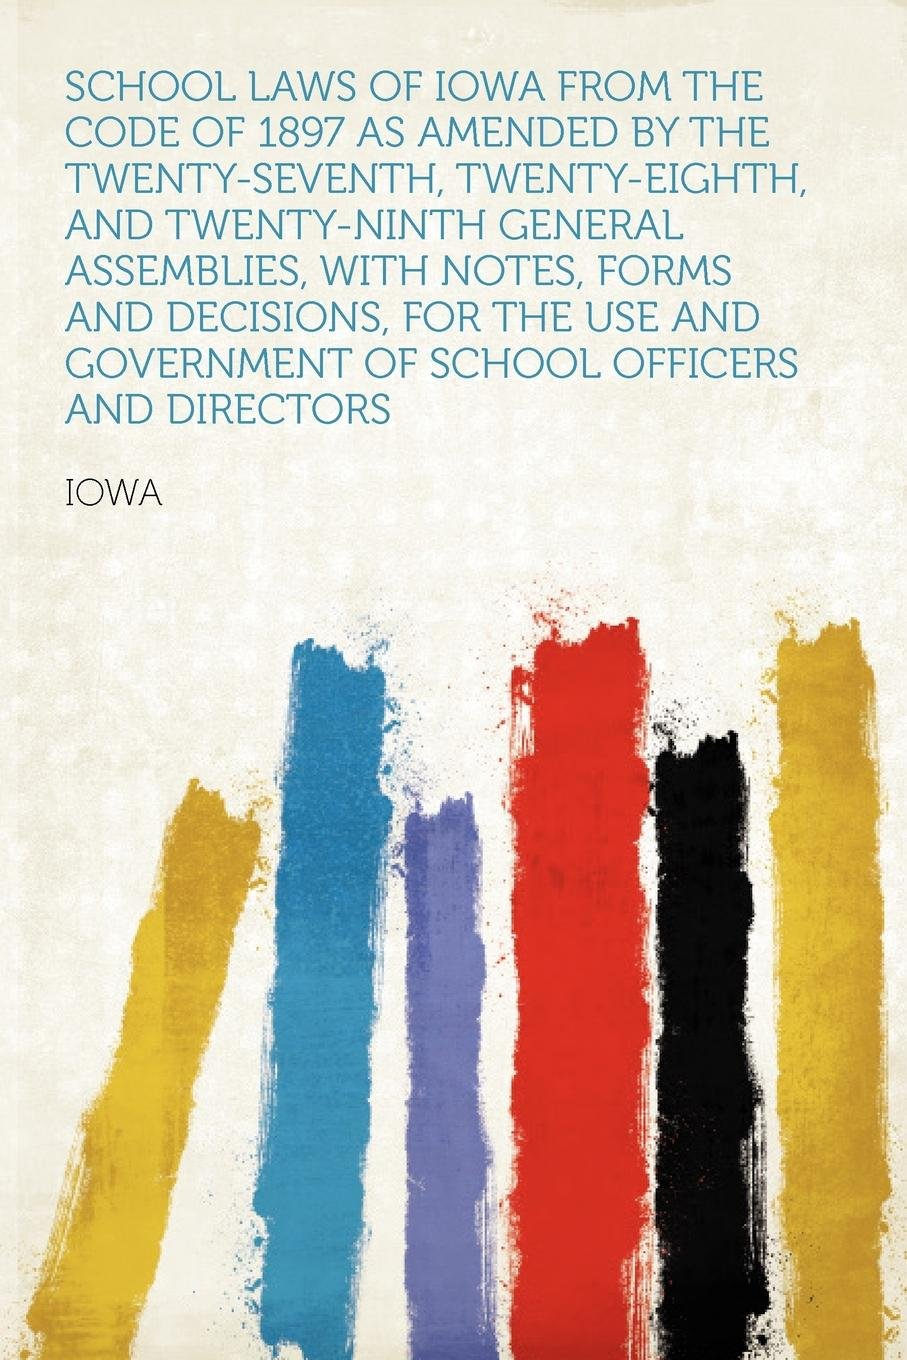 Download School Laws of Iowa From the Code of 1897 as Amended by the Twenty-seventh, Twenty-eighth, and Twenty-ninth General Assemblies, With Notes, Forms and Government of School Officers and Directors pdf